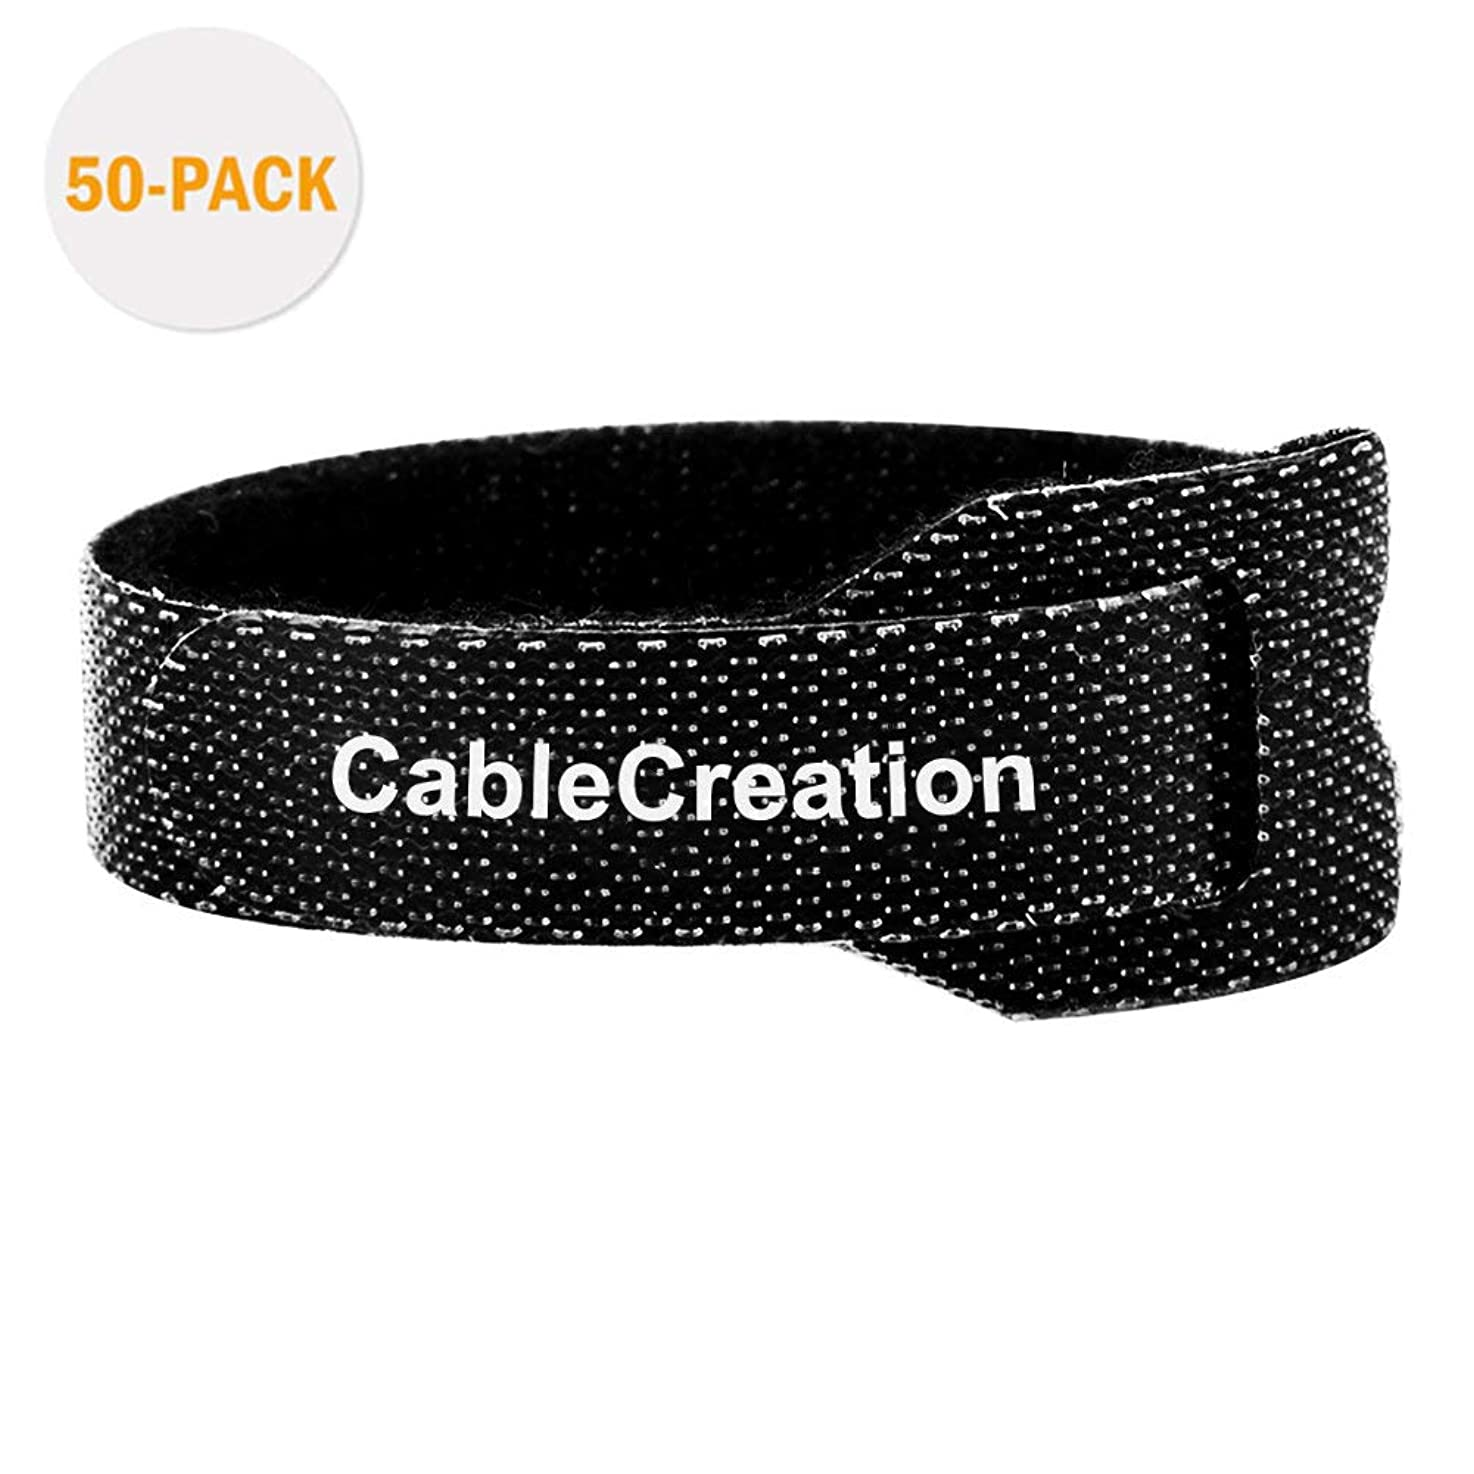 Cable Ties,CableCreation 50PCS Reusable Fastening Organizer Cord/Tie Wrap, Nylon Adjustable Cable Management, 6 inch/Black